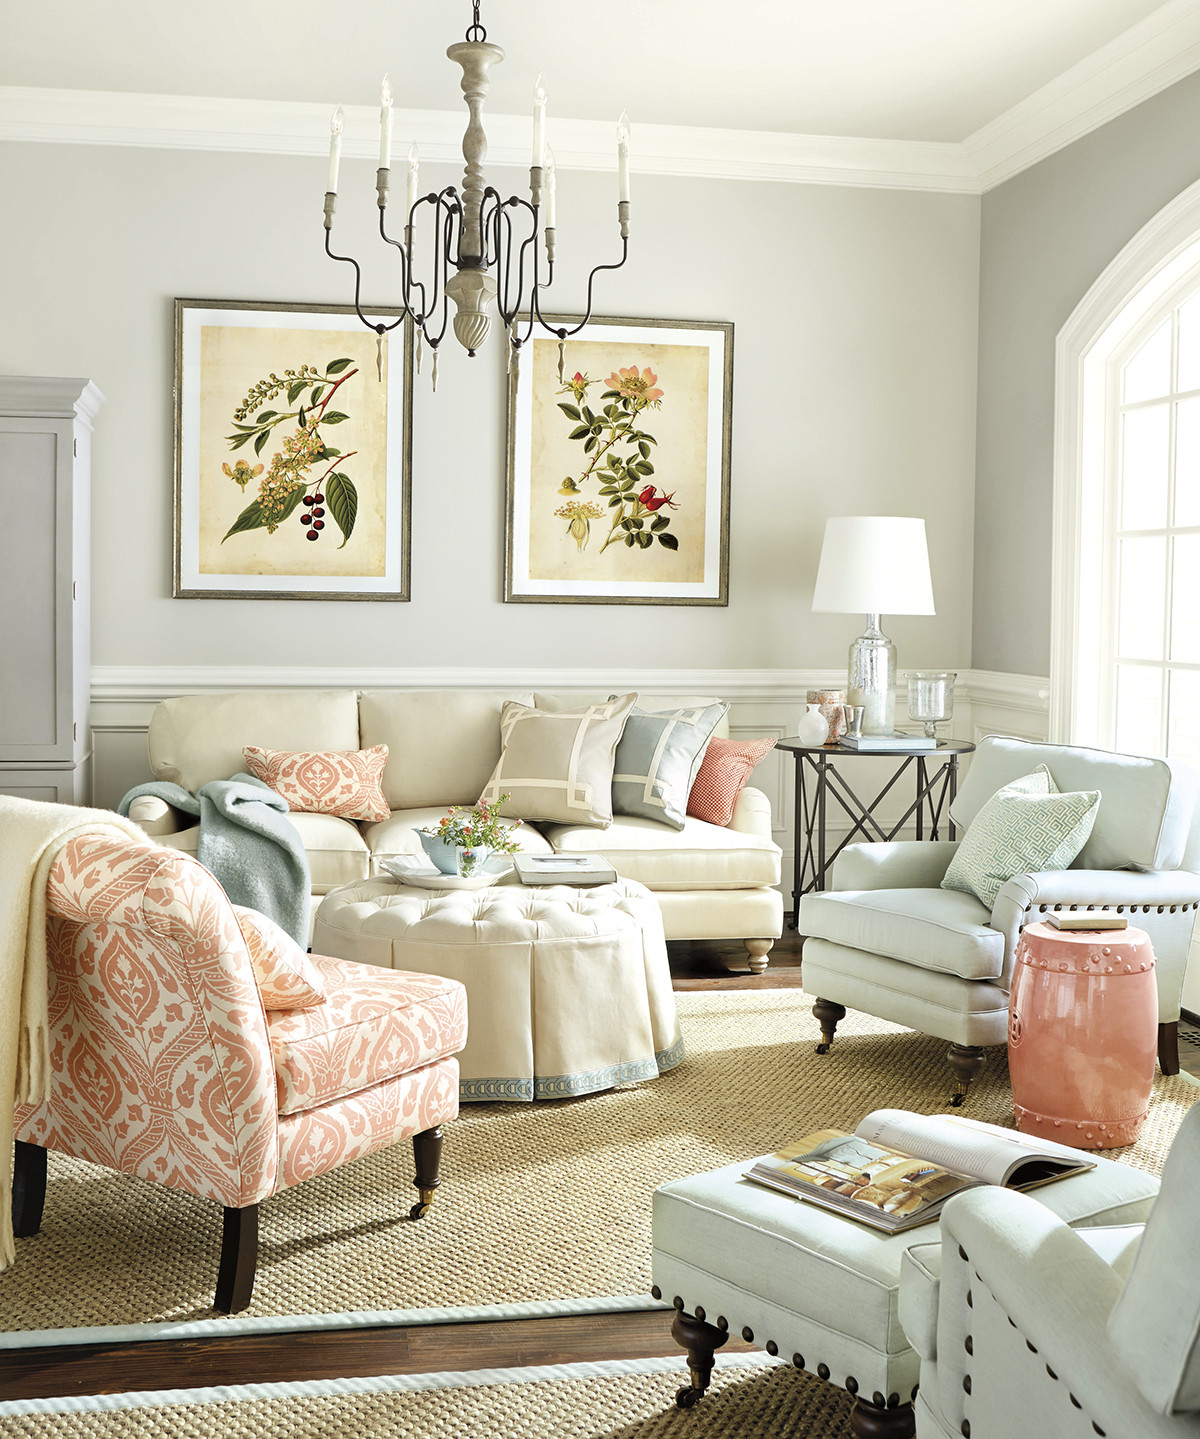 Best ideas about Blue Living Room . Save or Pin Interior Design Basics Color Theory Now.